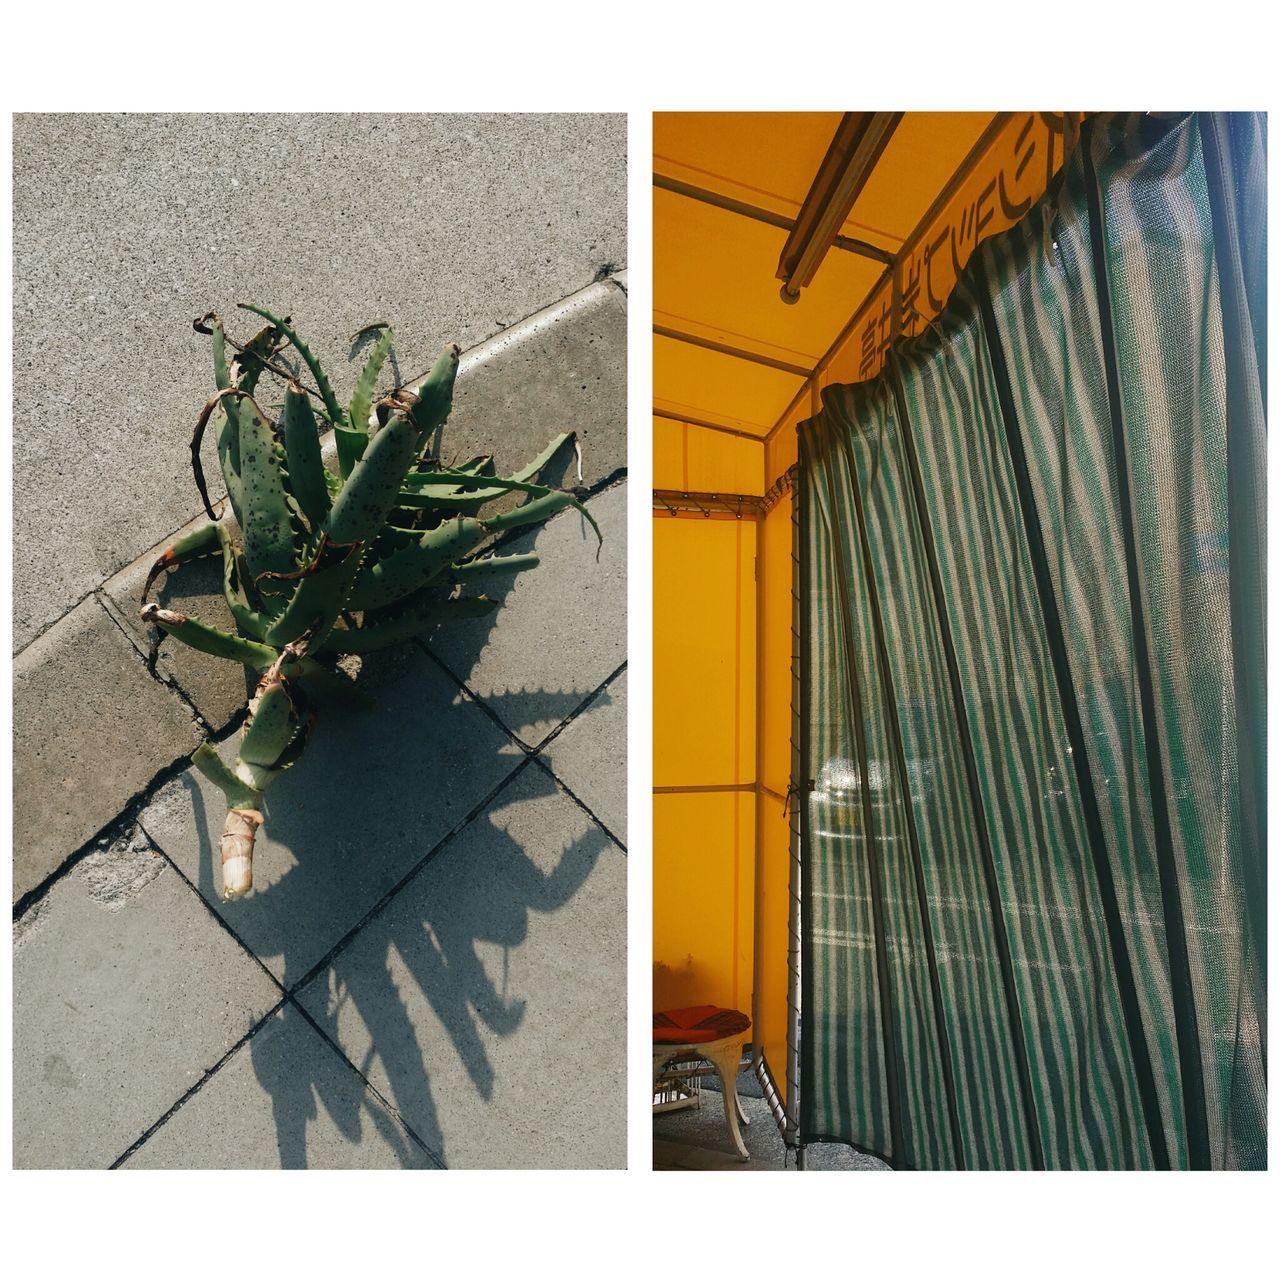 my friend gave me a well grown Aloe Vera Simplicity Smartphonephotography IPhoneography Japan Urbanphotography Streetphotography Minimalism Minimal Minimalist Minimalobsession Oftheafternoon Fotoguerrilla Fotografiamagazine Noicemag Showcase April